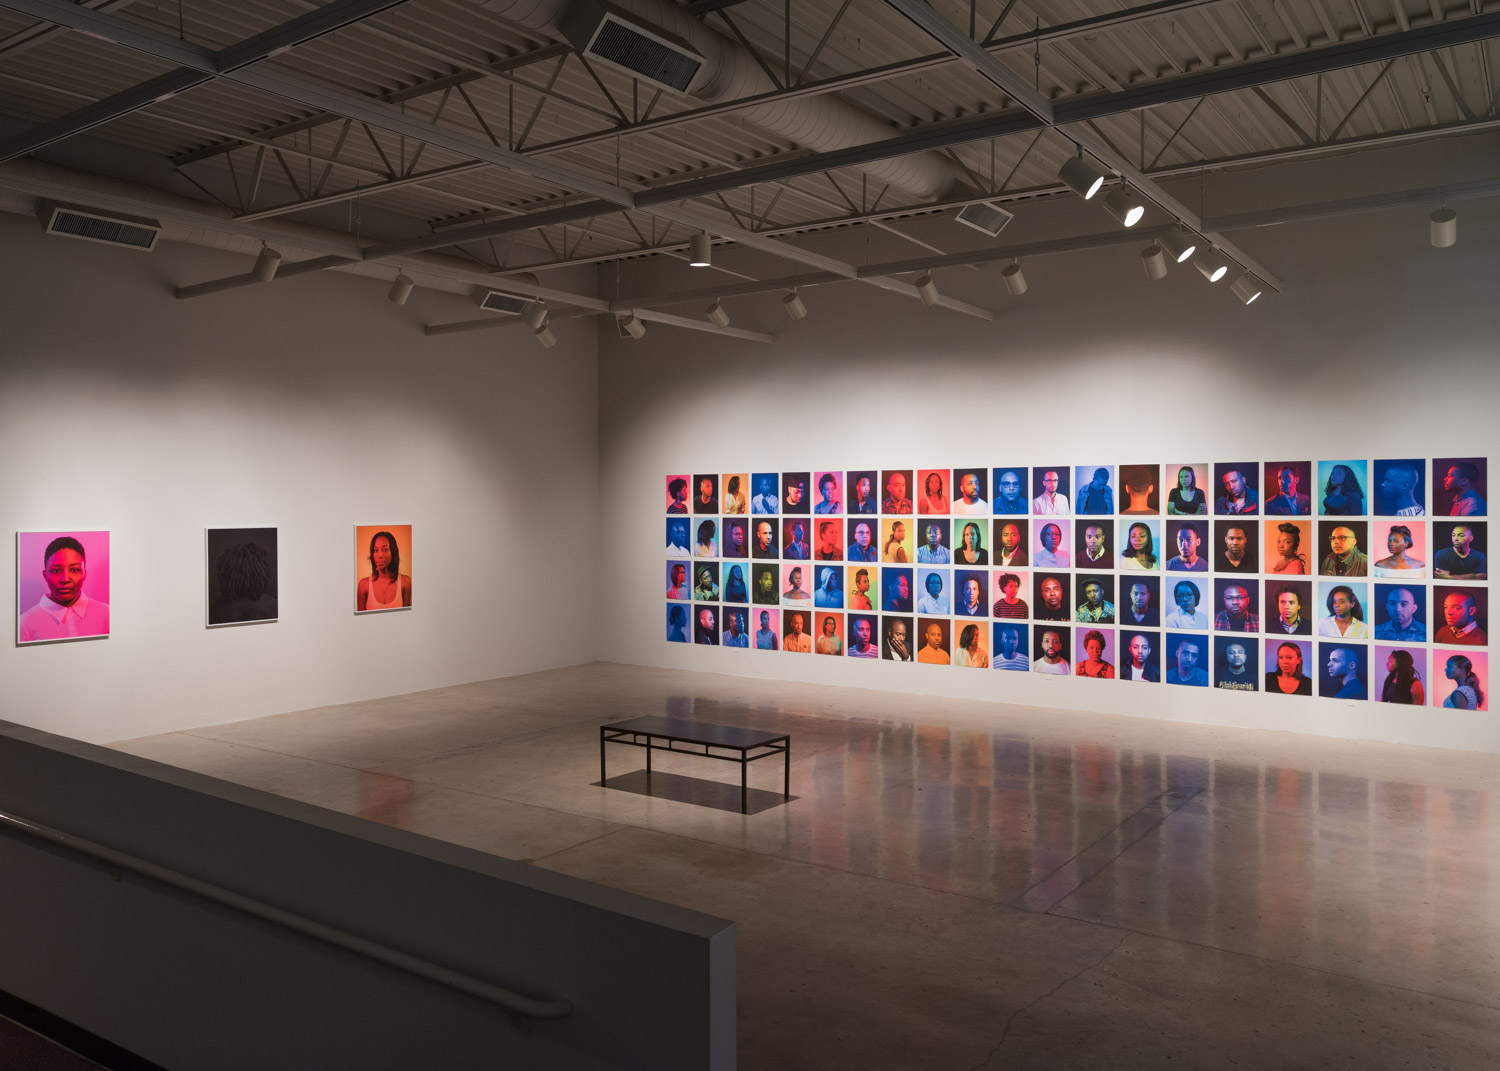 Joseph Gross Gallery, University of Arizona, 2017